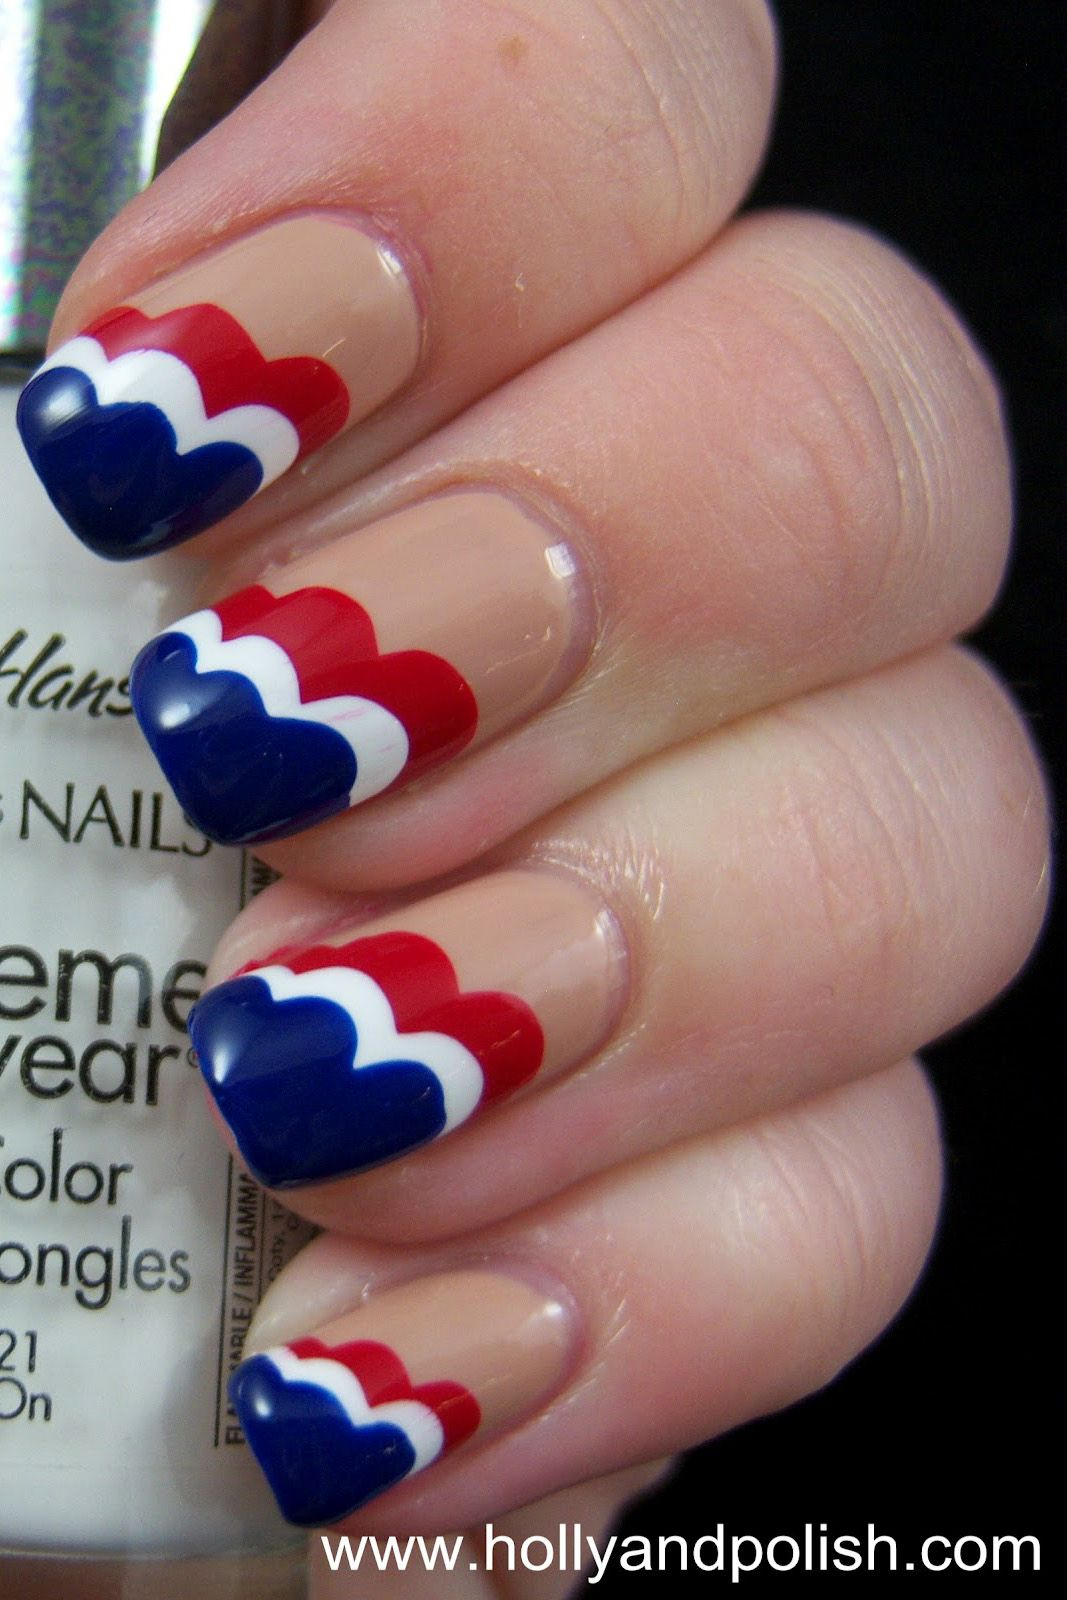 21 Best 4th of July Nails to Celebrate in Style 21 Best 4th of July Nails to Celebrate in Style new picture